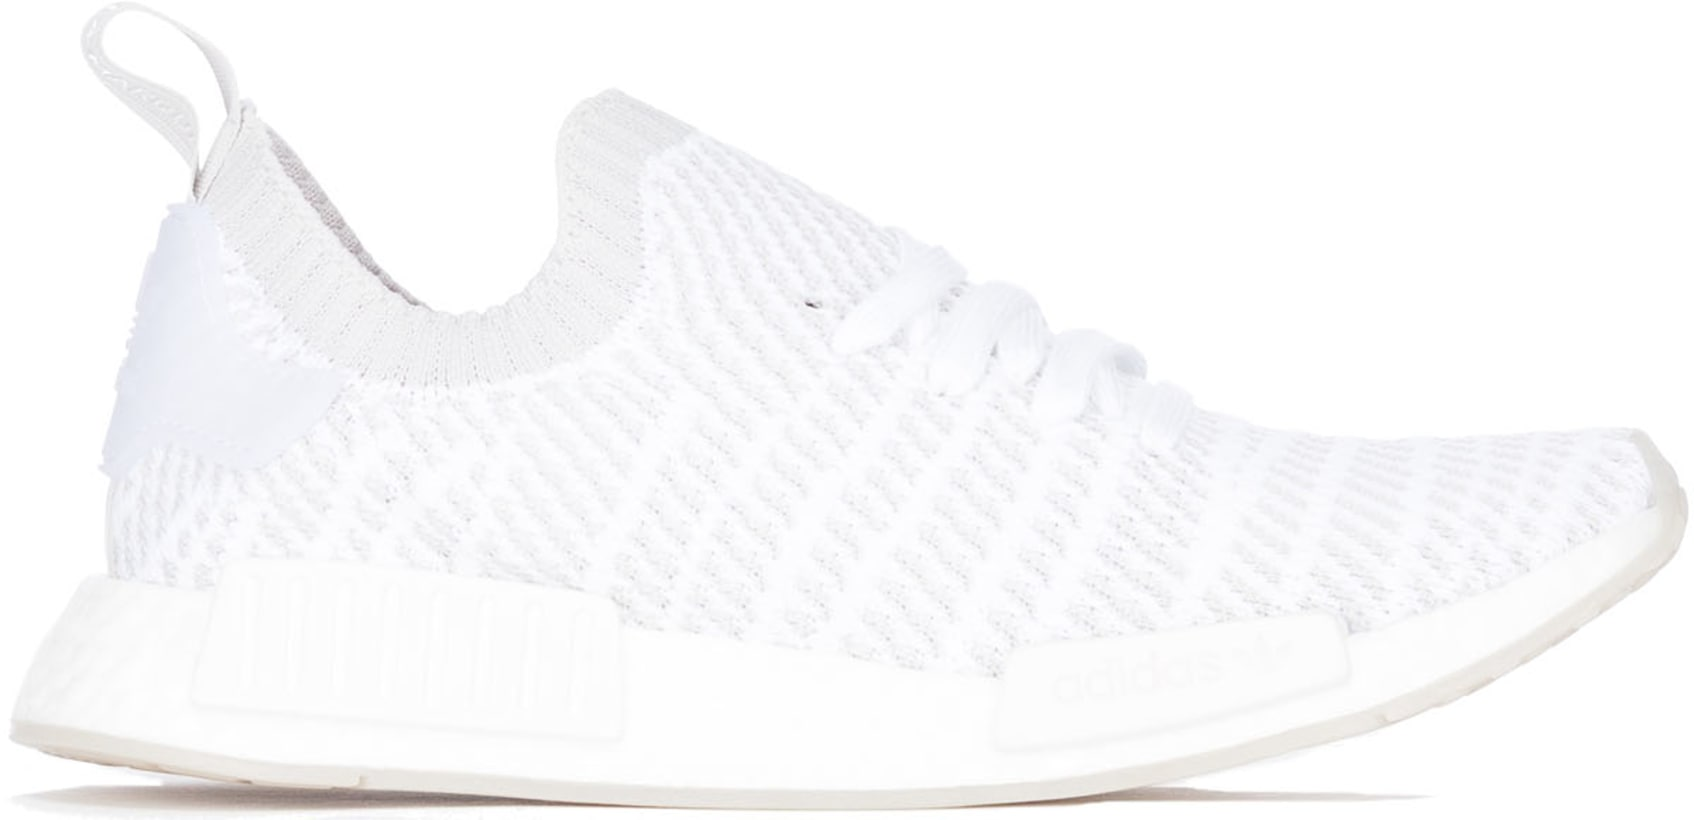 Adidas Originals Nmd R1 Stlt Primeknit Cloud White Grey Solar